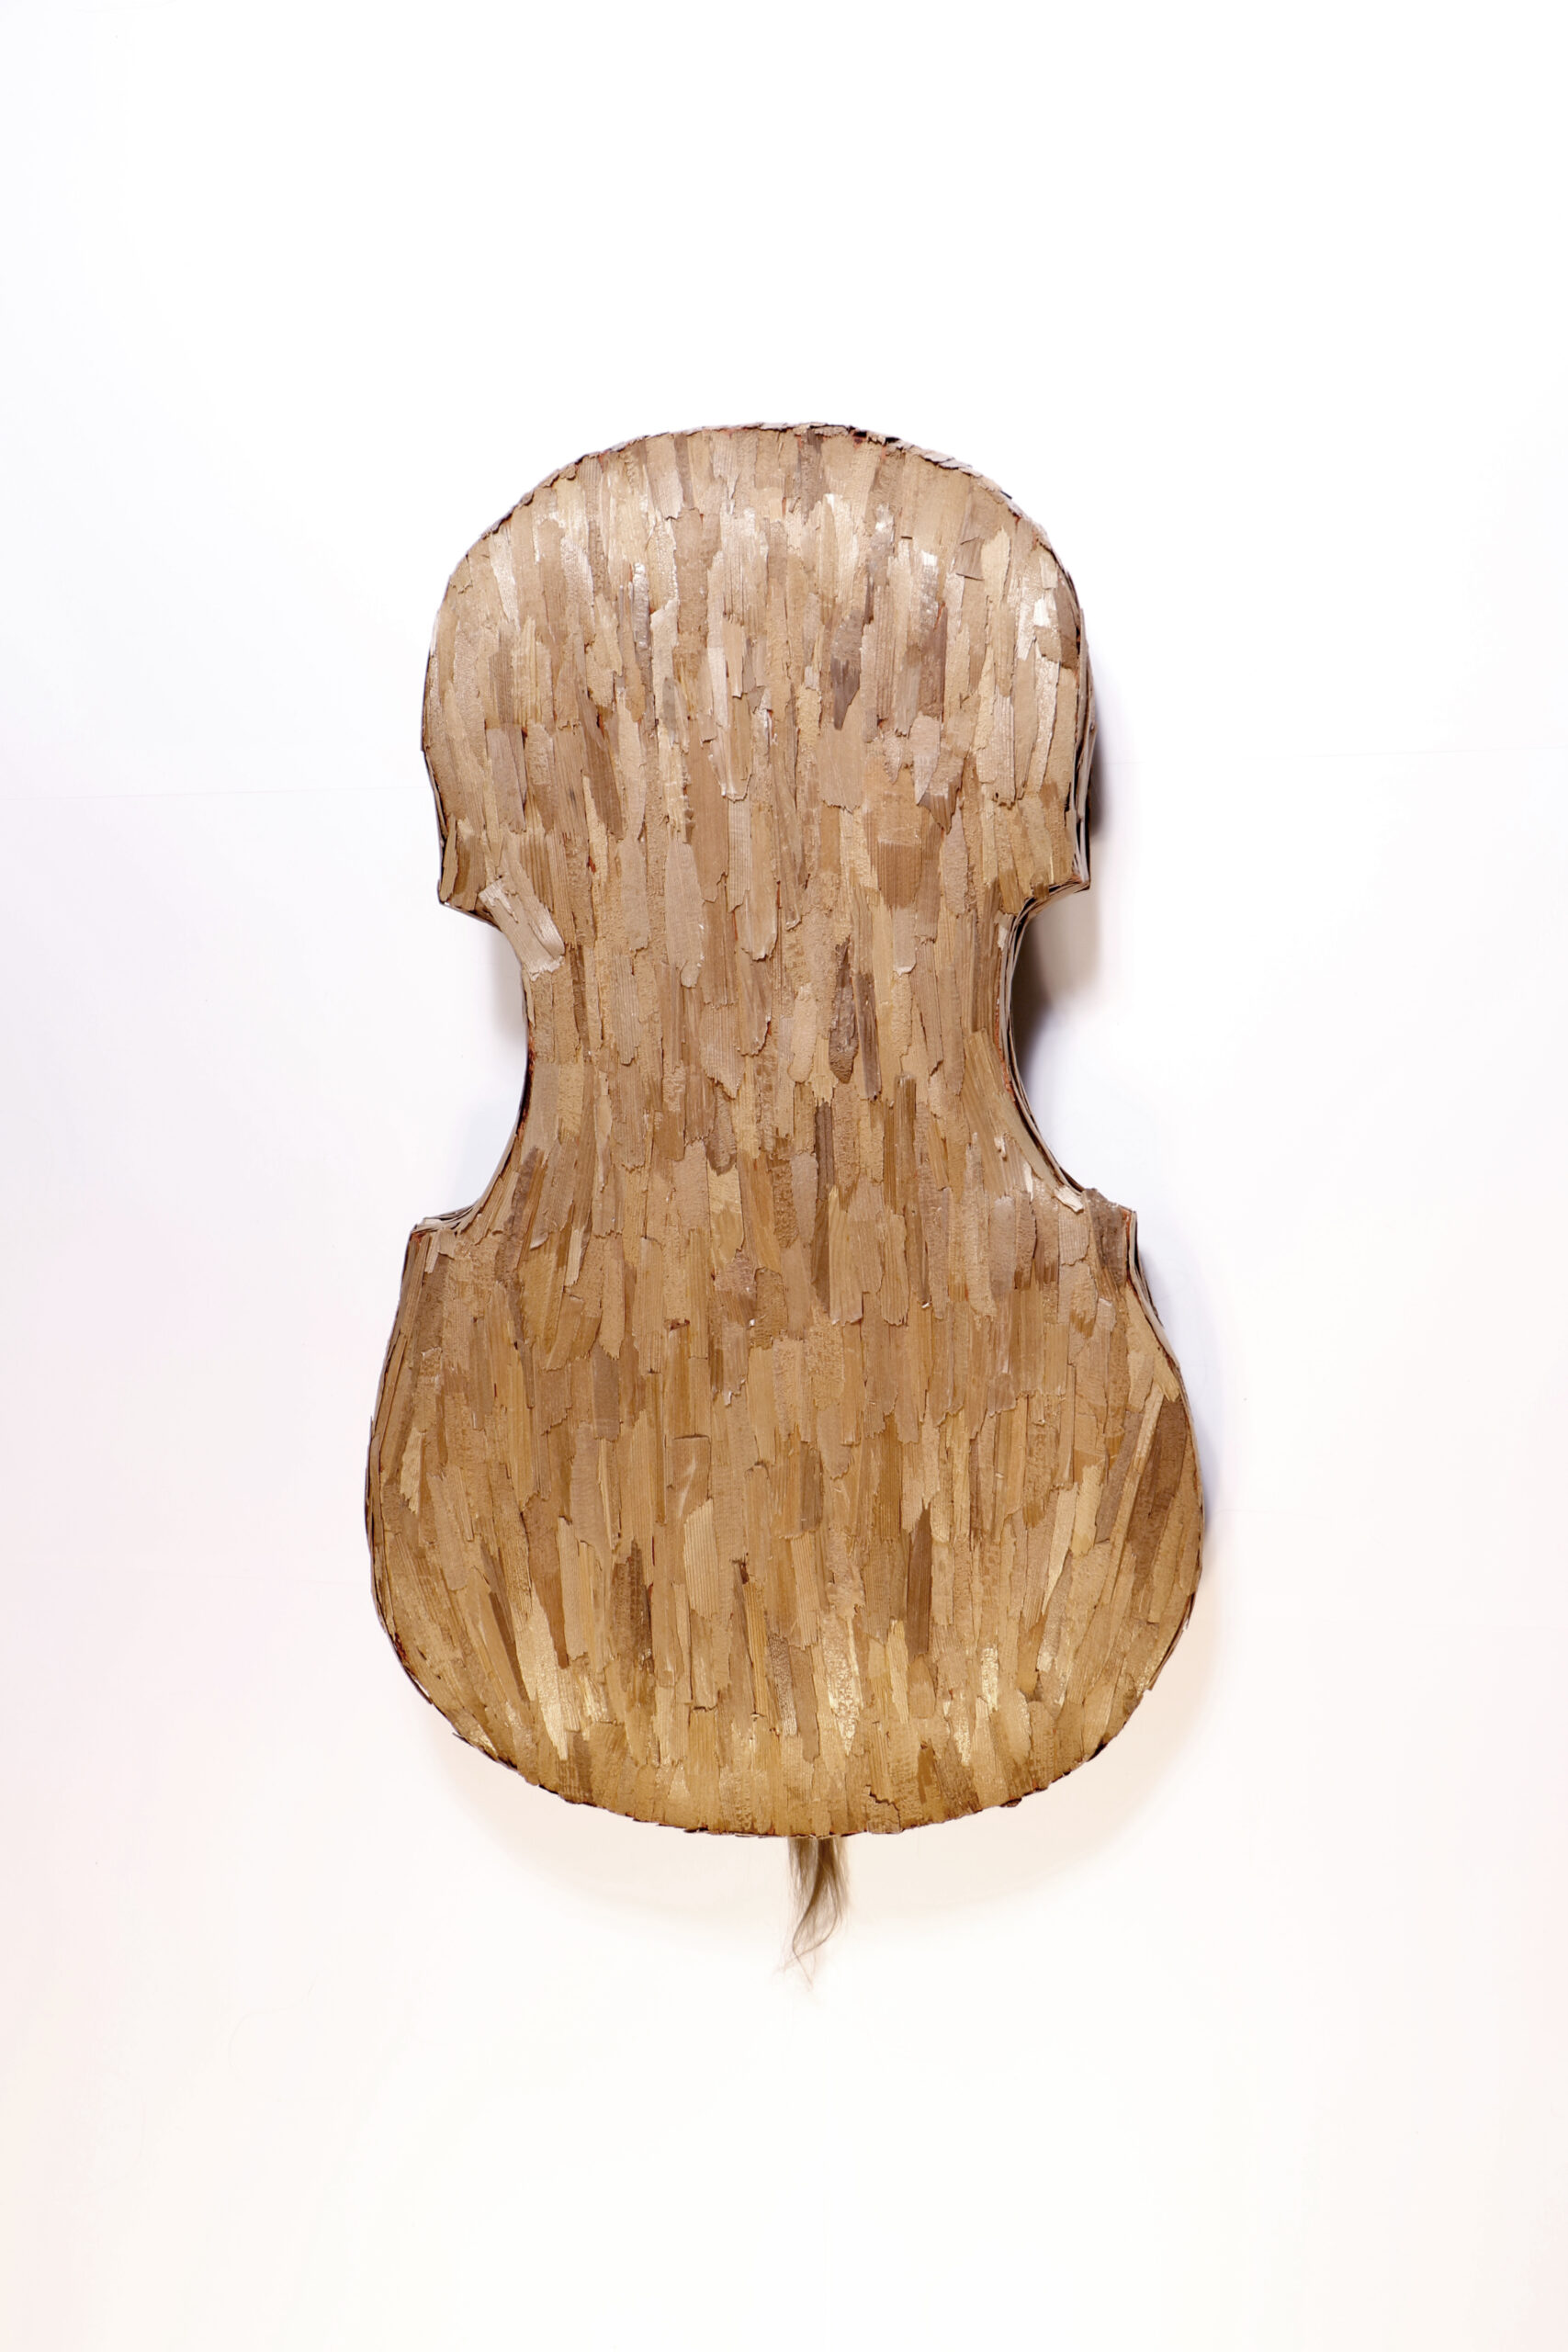 Cello 2011<div style='clear:both;width:100%;height:0px;'></div><span class='desc'>Size: 5 x 18 x 30 Inch <br>Material: Hair, wood, leather, polyester <br>Photo: Studio van Zelden </span>